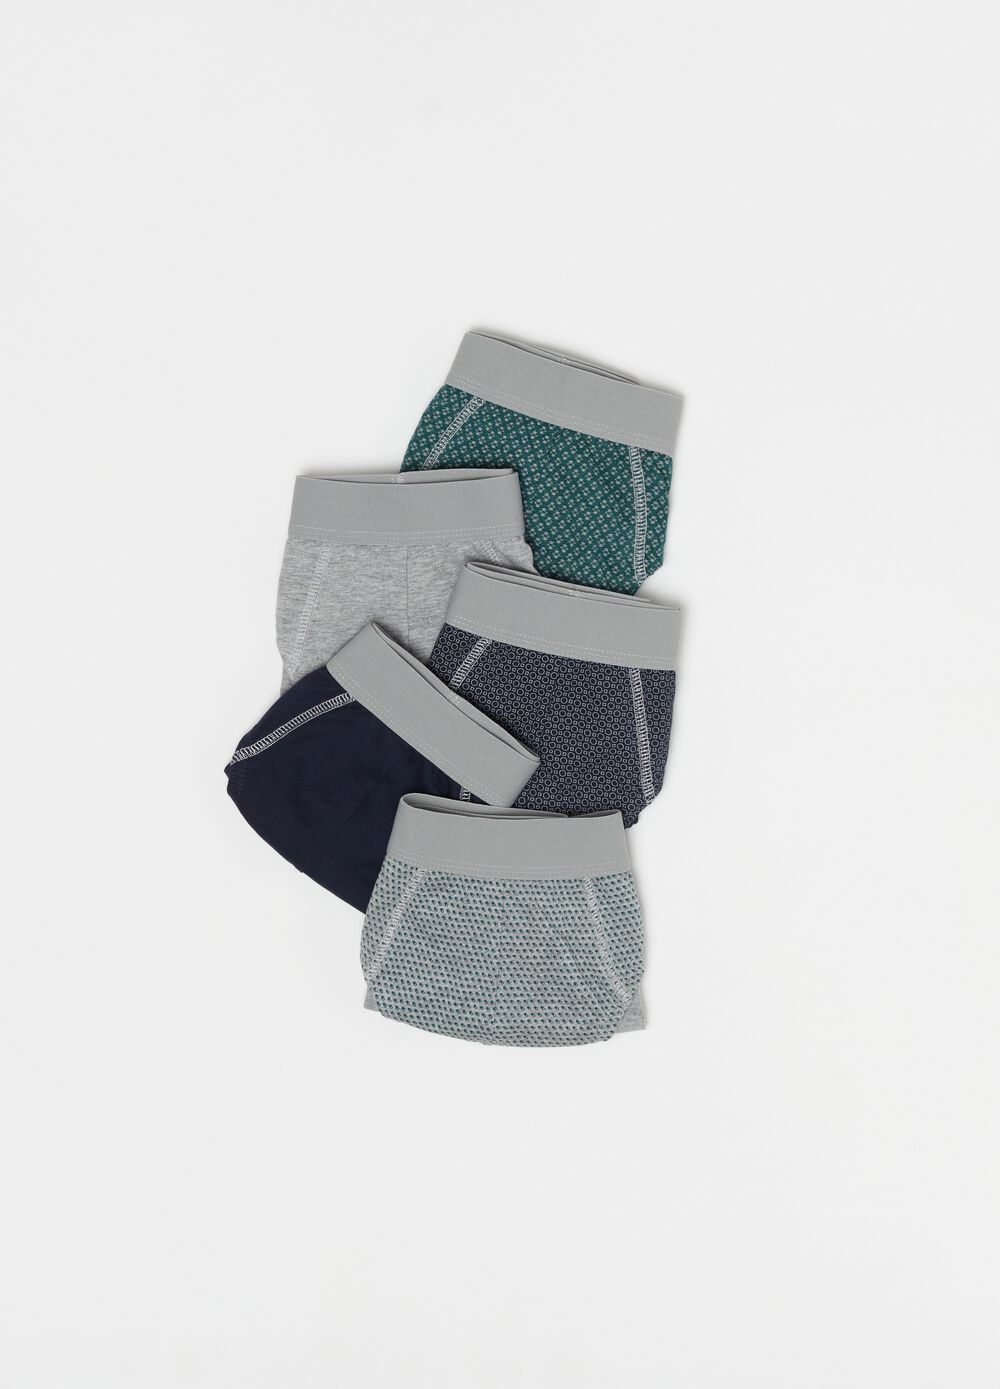 Five-pack 100% organic cotton briefs with pattern